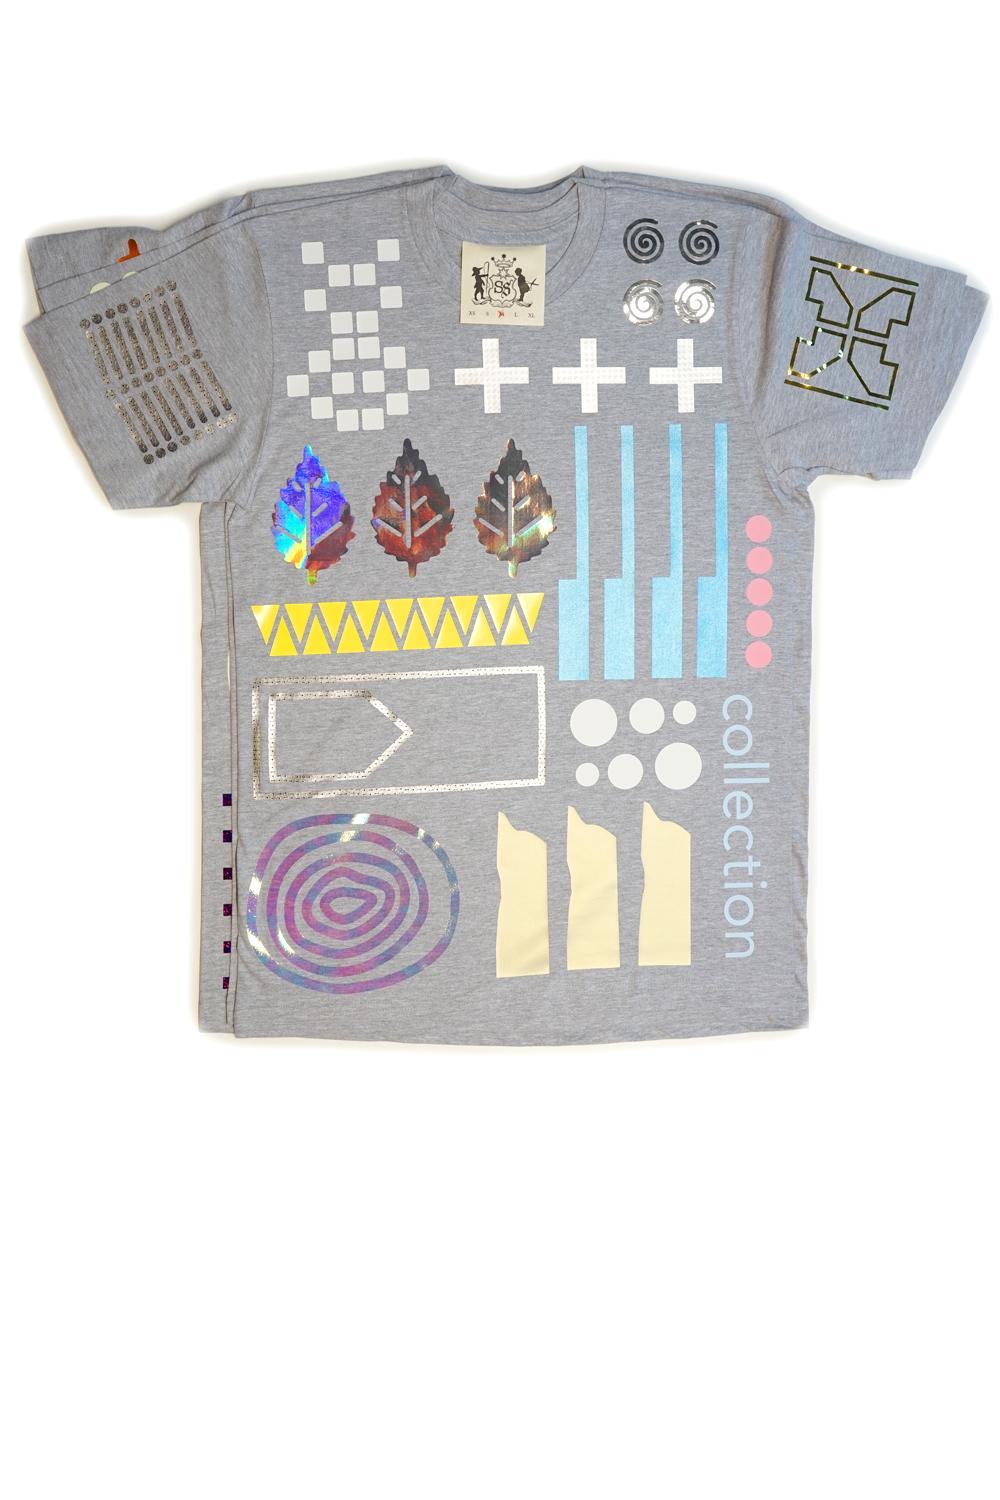 Everything Allover T-Shirt (grey) - 8